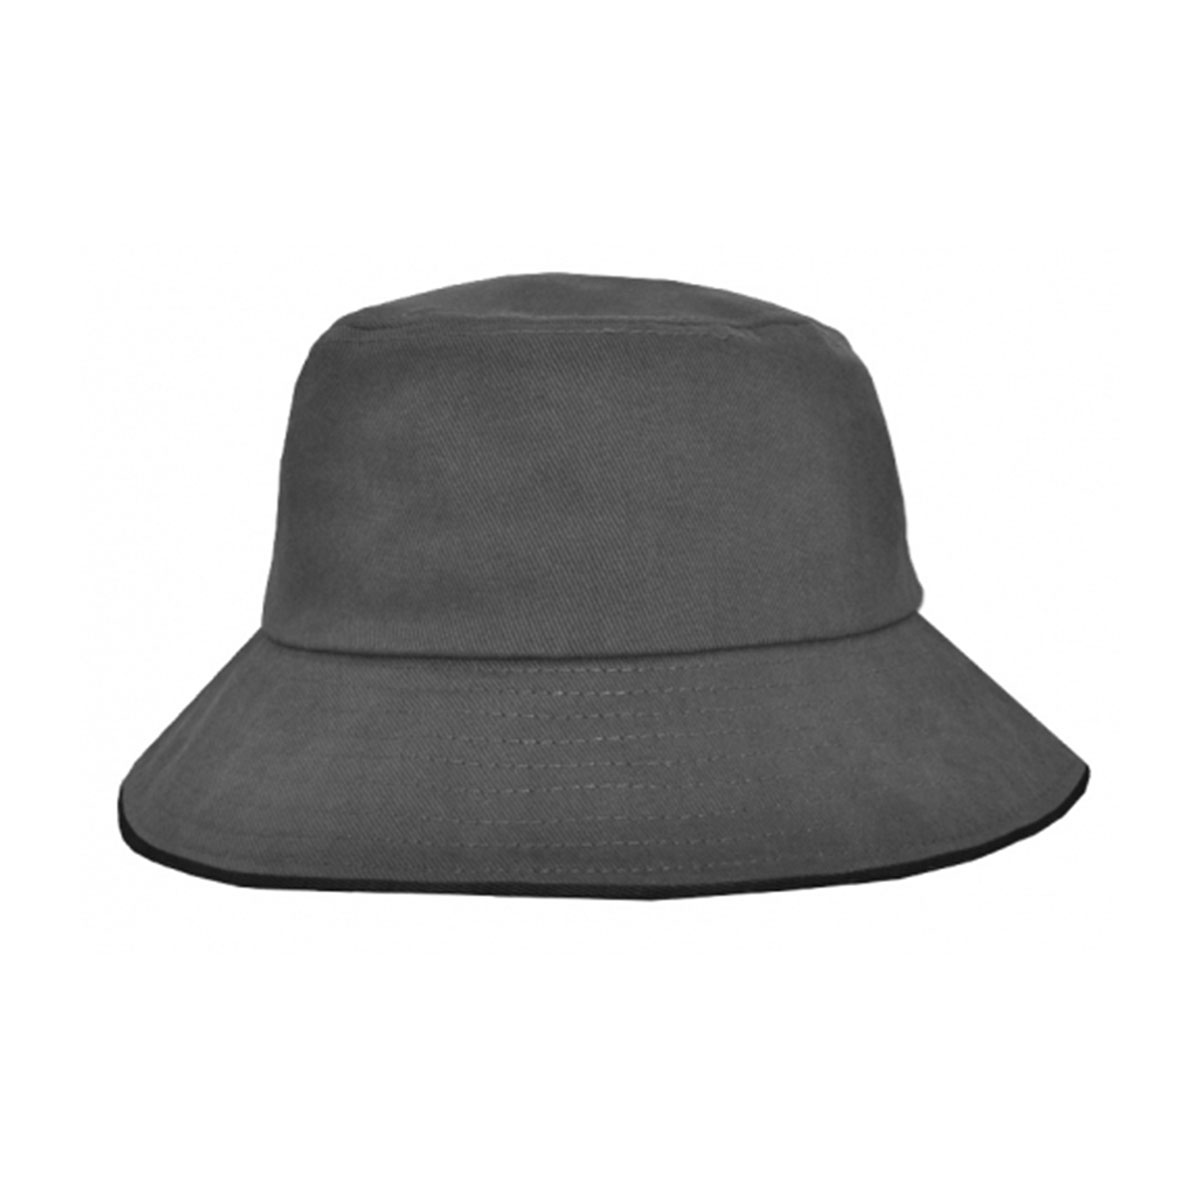 Bucket Hat Sandwich Design-Charcoal / Black